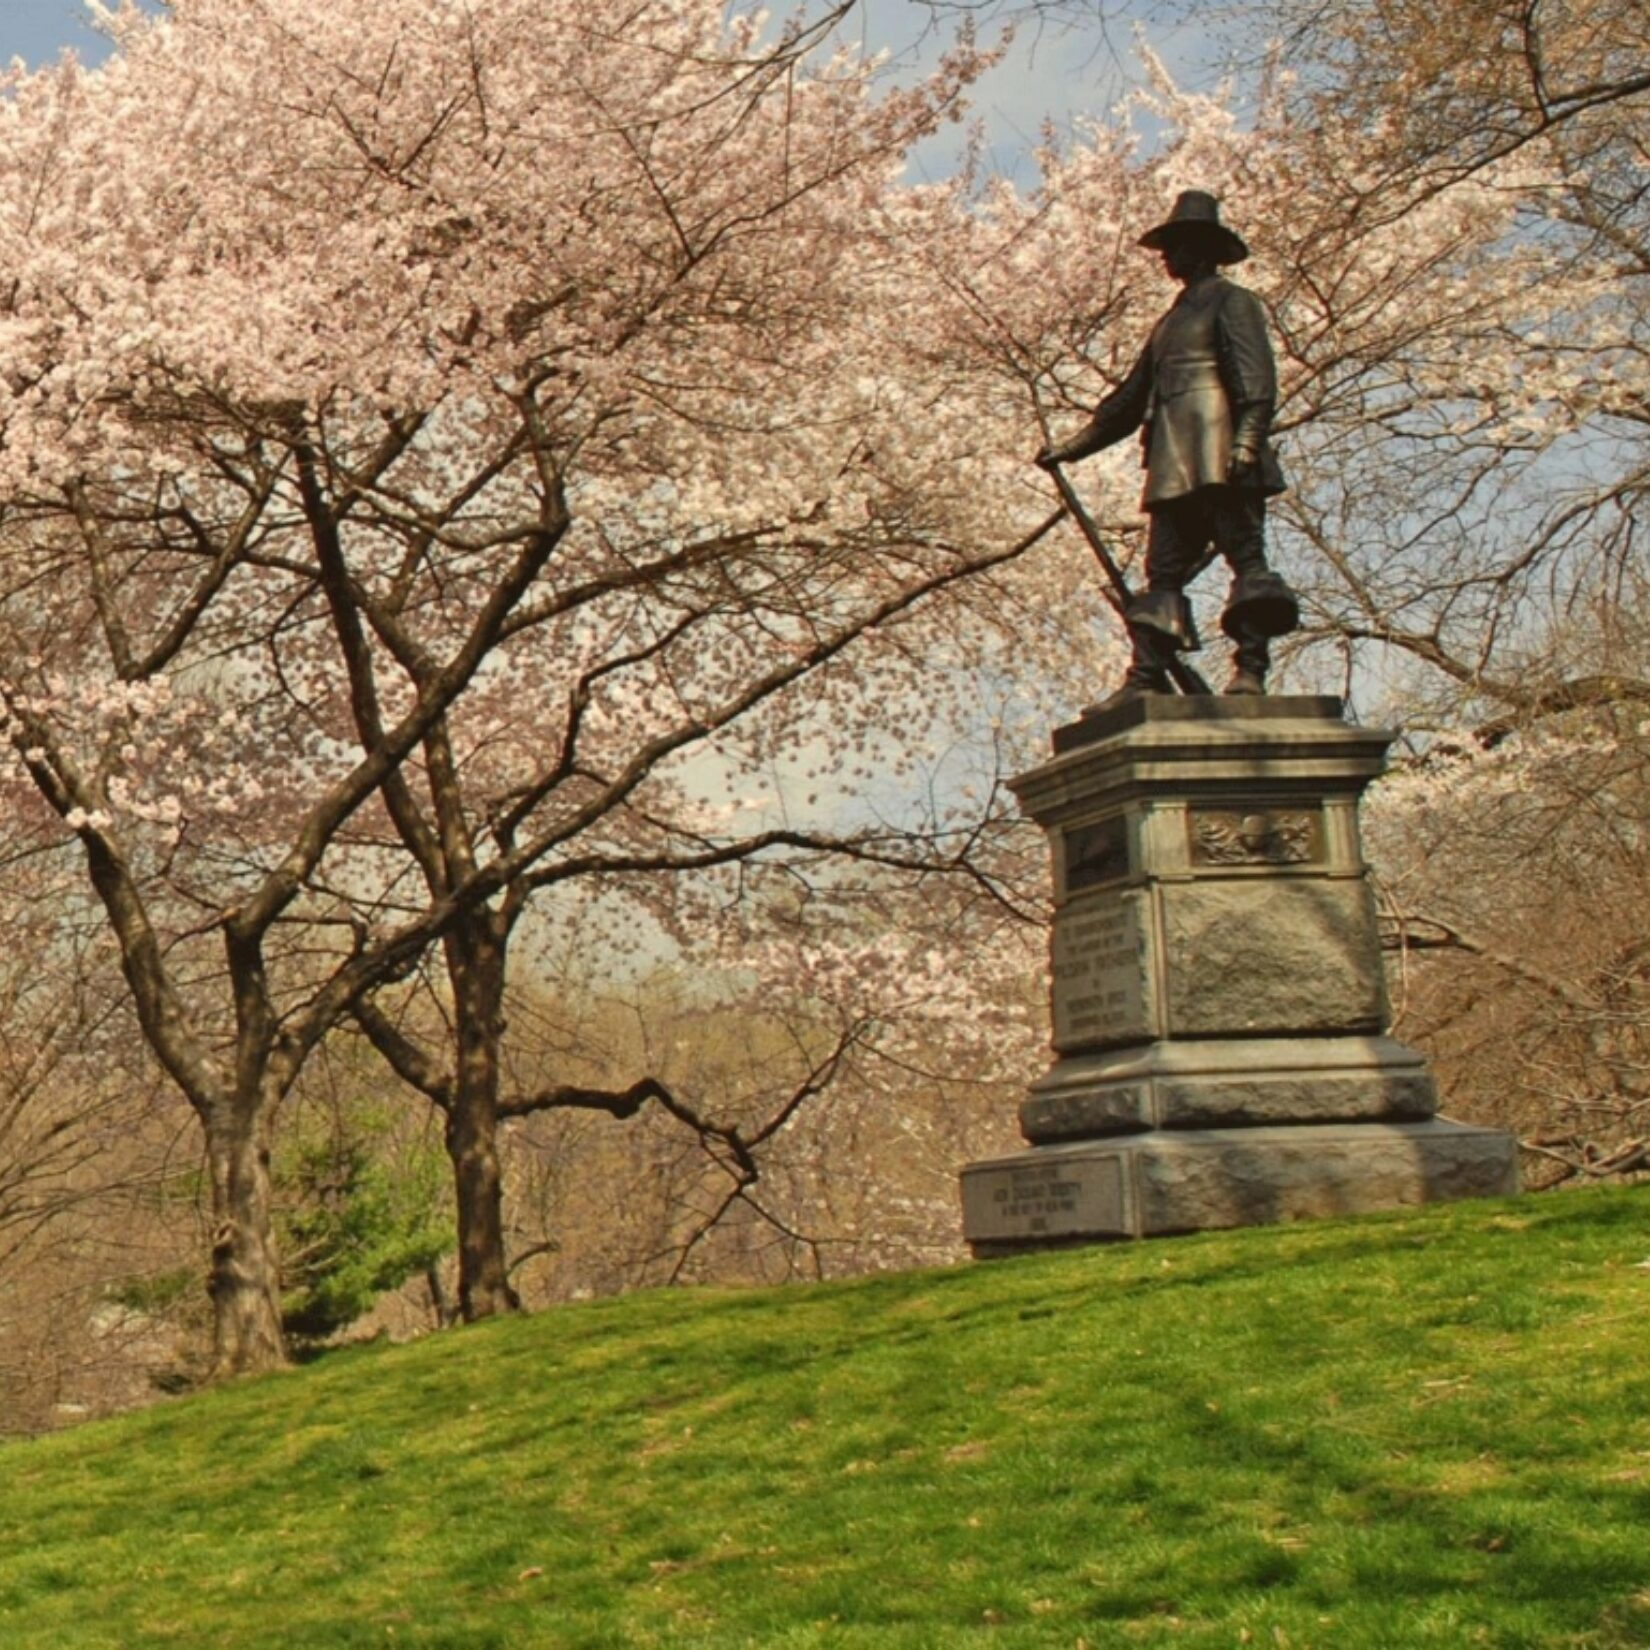 Trees sprouting pink, spring buds line the slope of the hill to the eponymous statue at the crest.